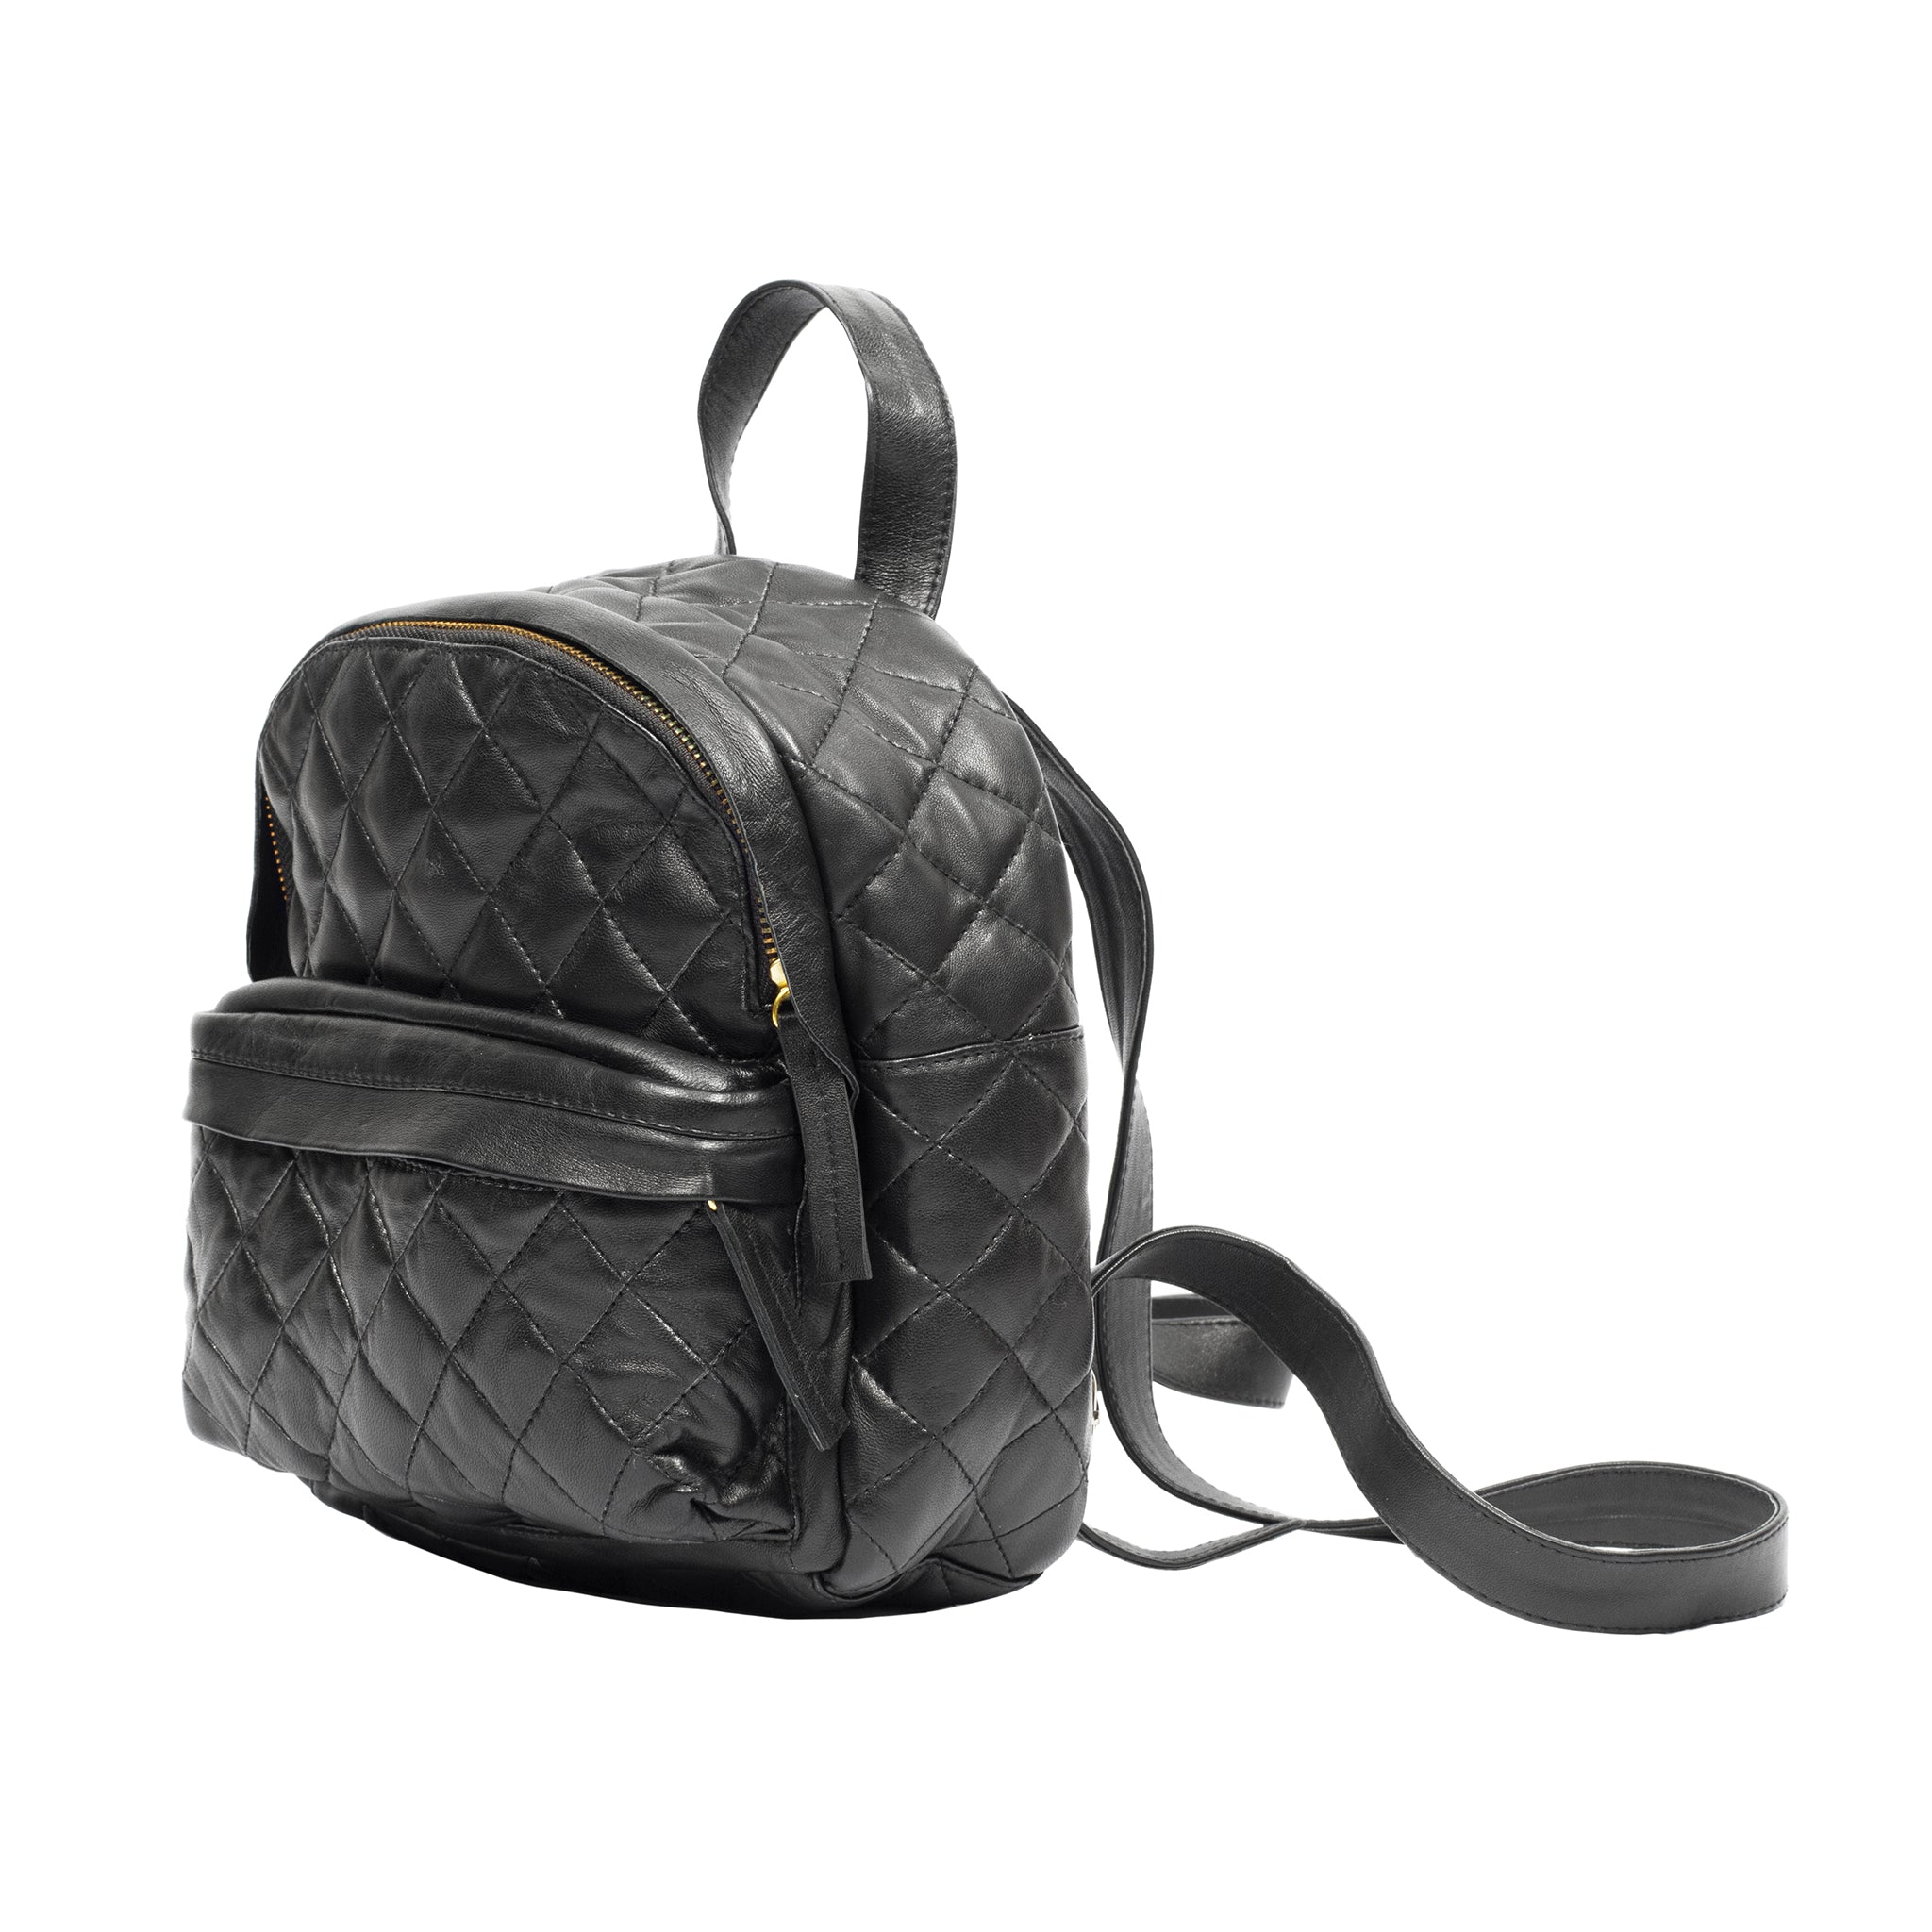 quilted black leather small women backpack